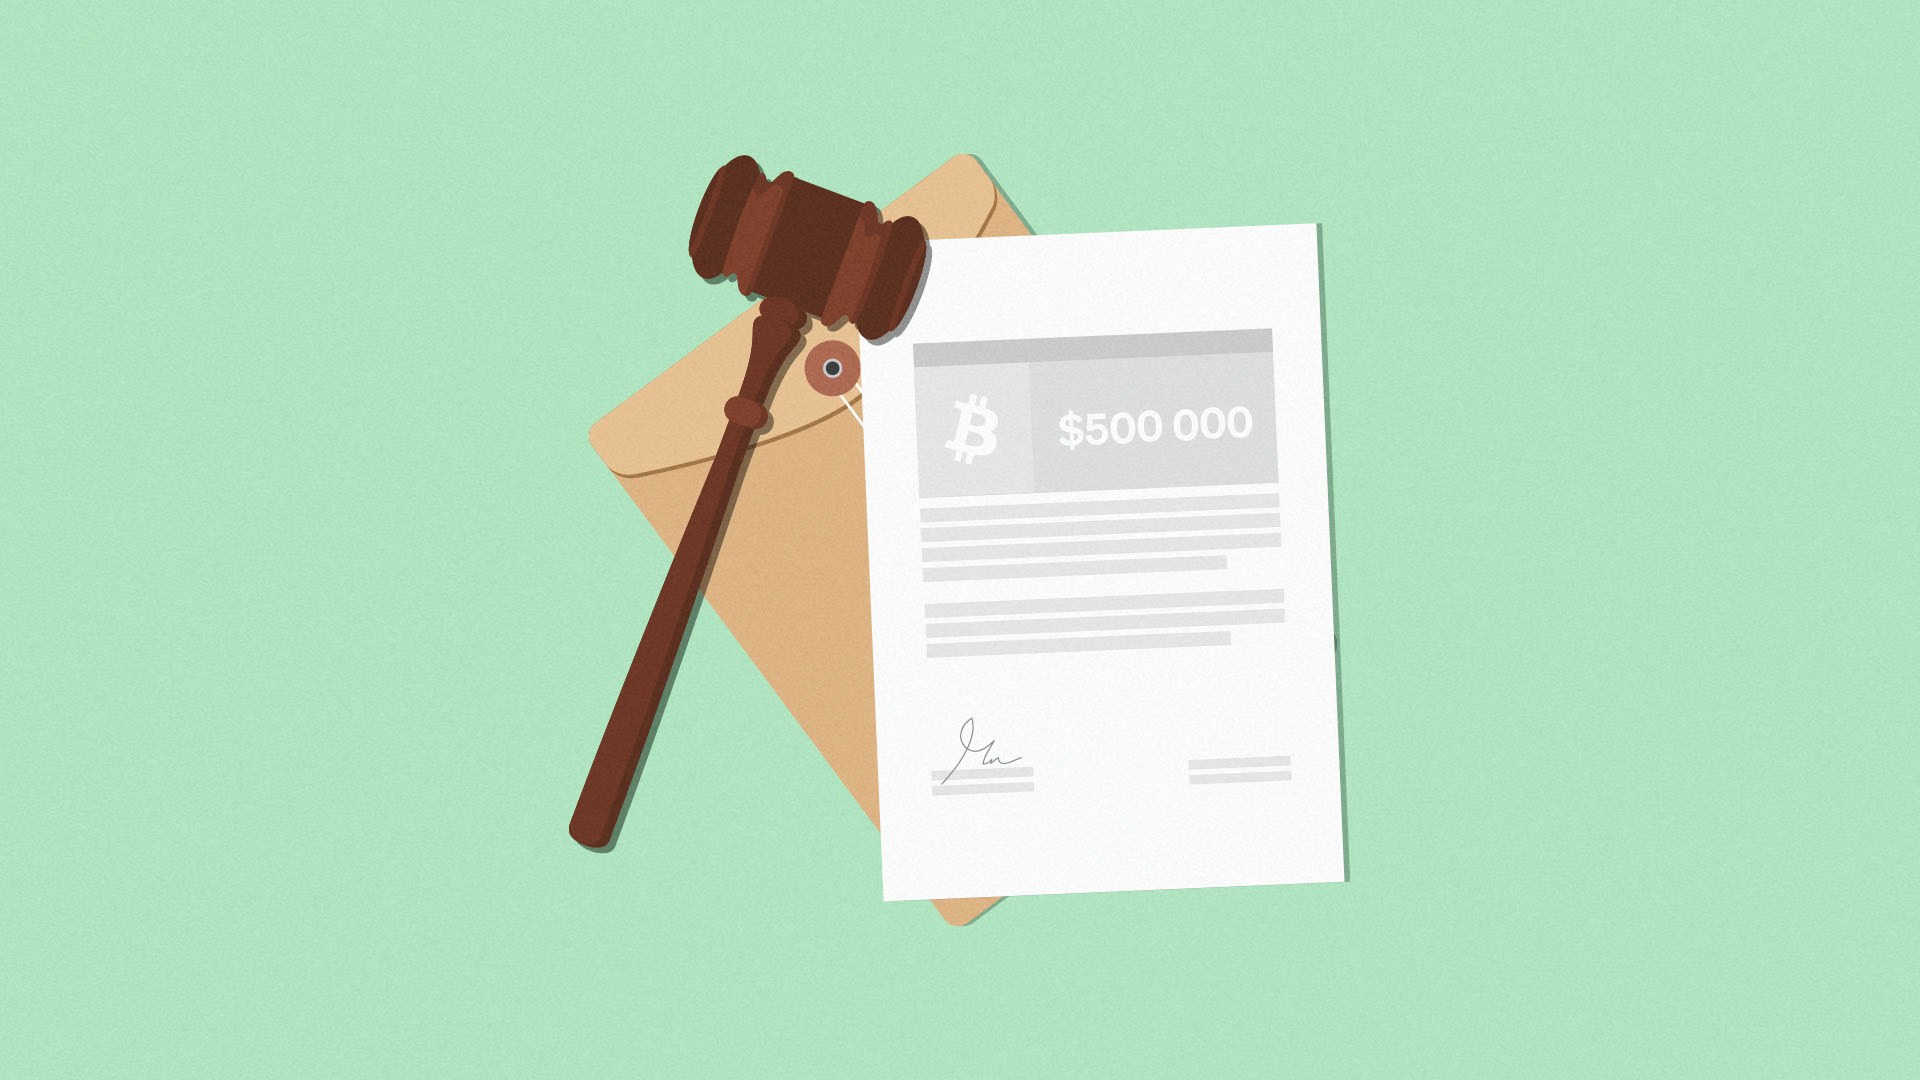 A judge's gavel and a document to show that Canada's Supreme Court just ruled on the matter of a Bitcoin buyer who never received their Bitcoin.